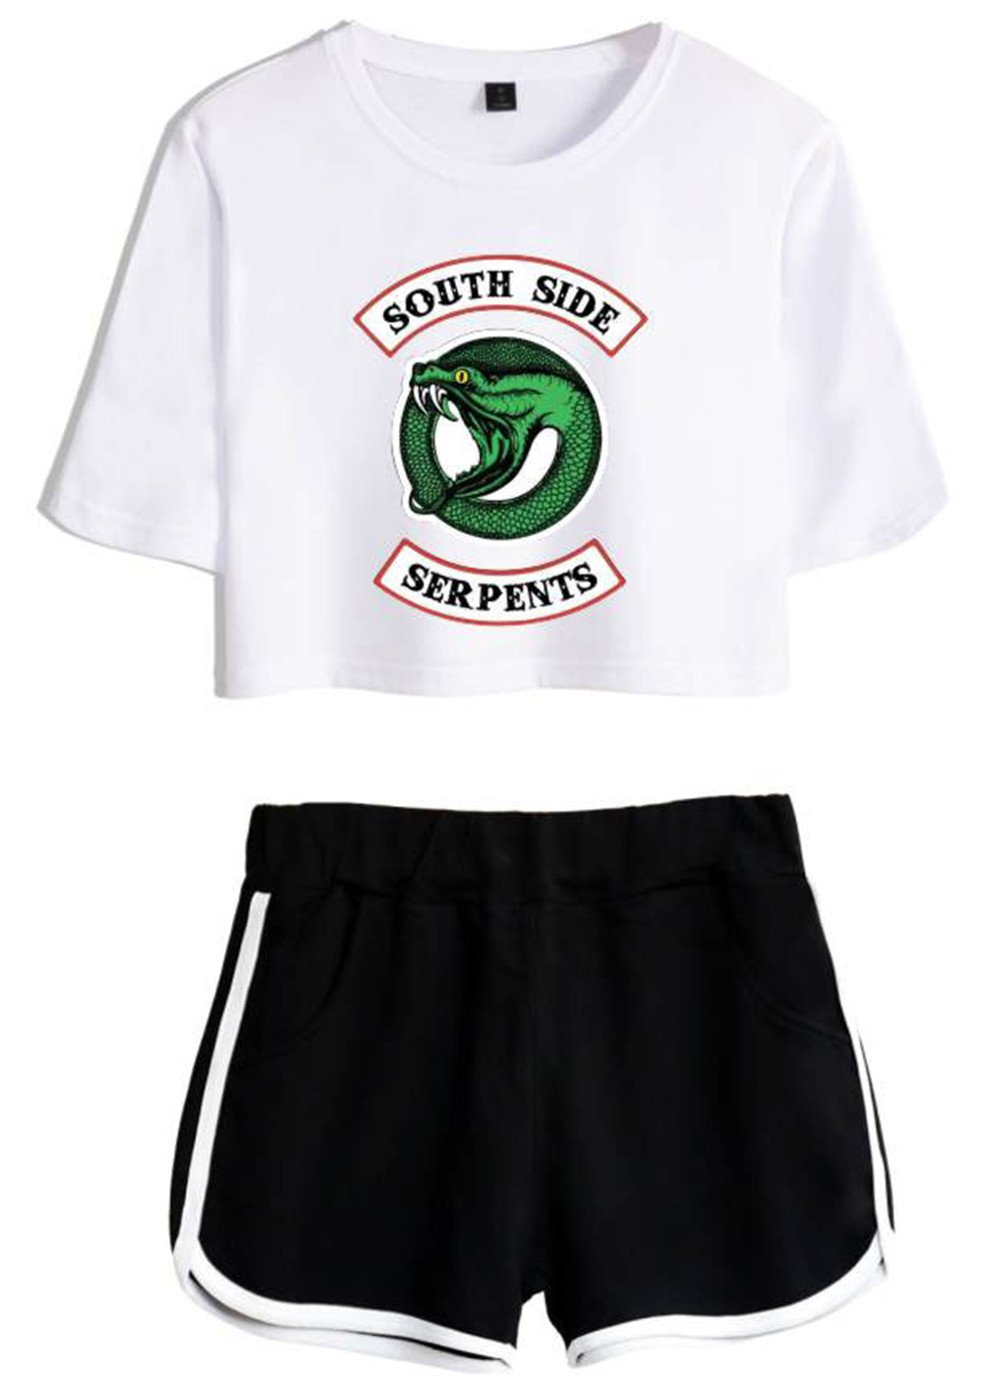 SERAPHY Riverdale Clothing Crop Top T-Shirt and Shorts Suit for Girls/Wowen 4892 White-Black M